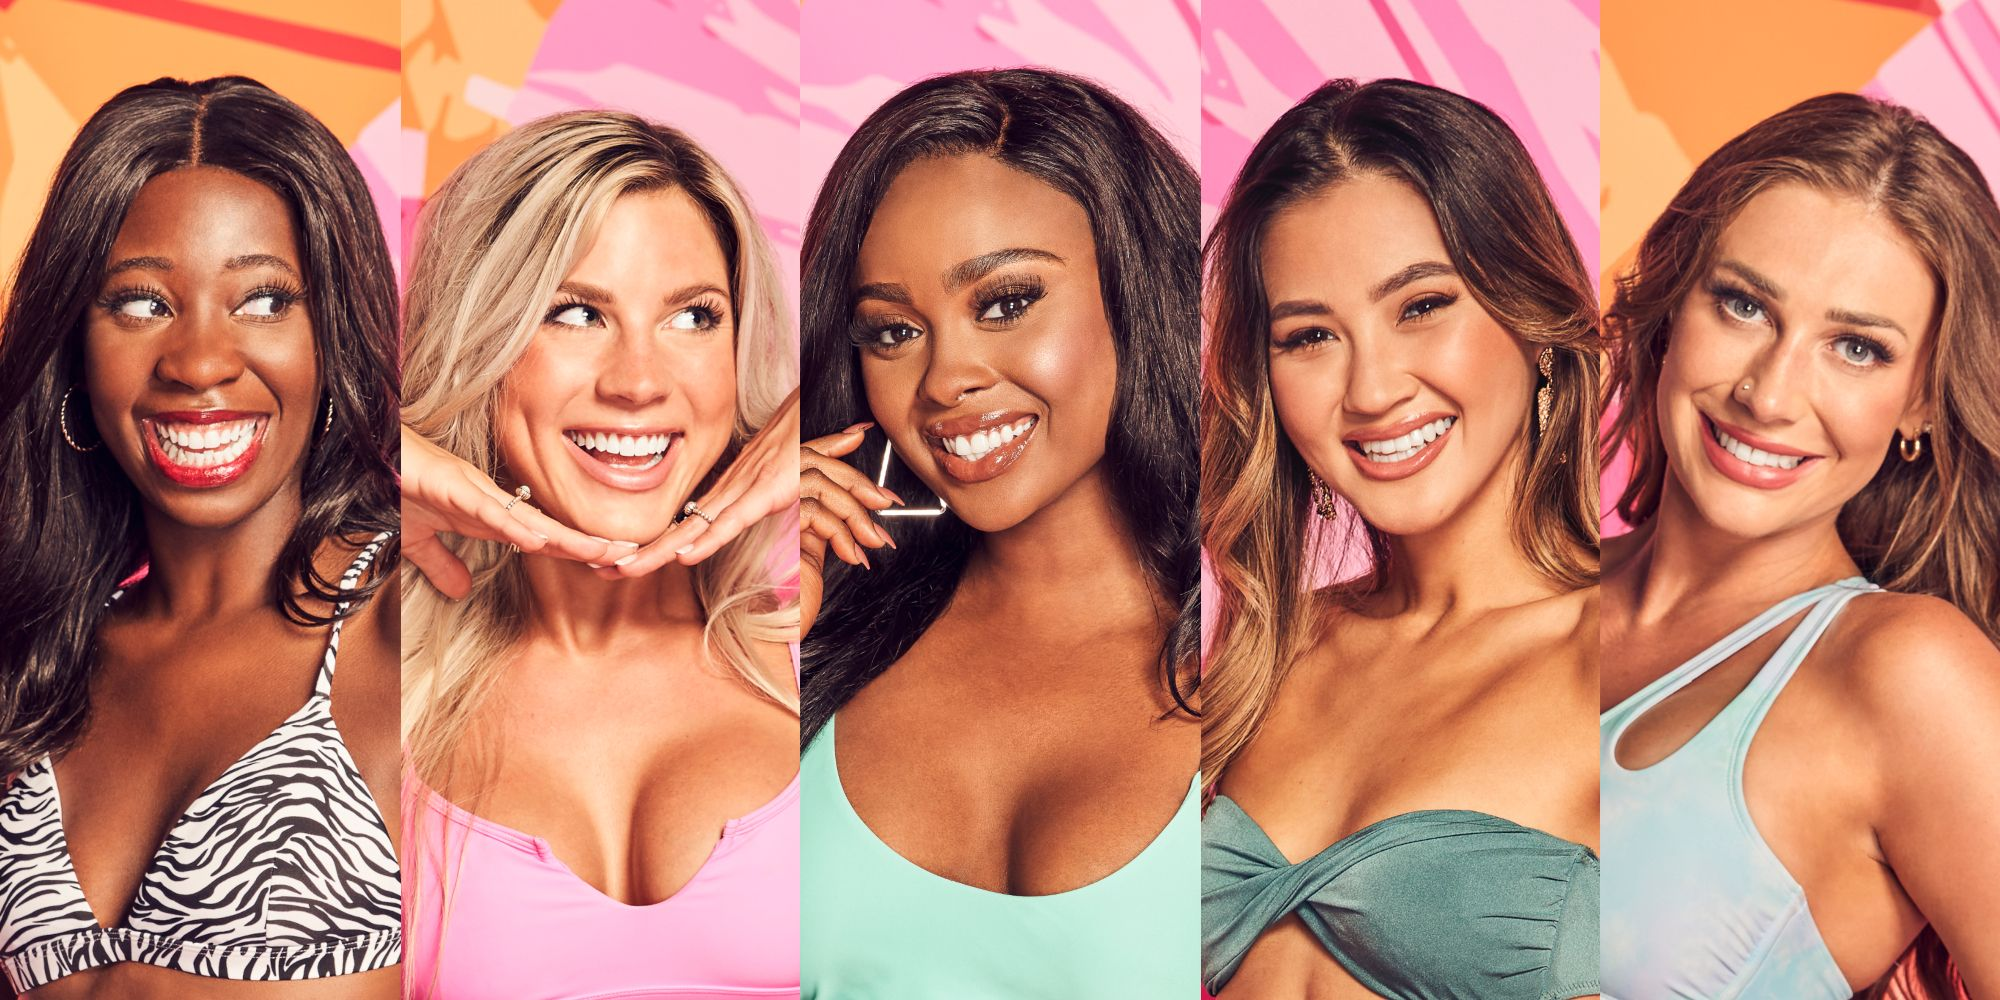 Love Island Usa Season 3 Everything To Know About The Cast Of Women